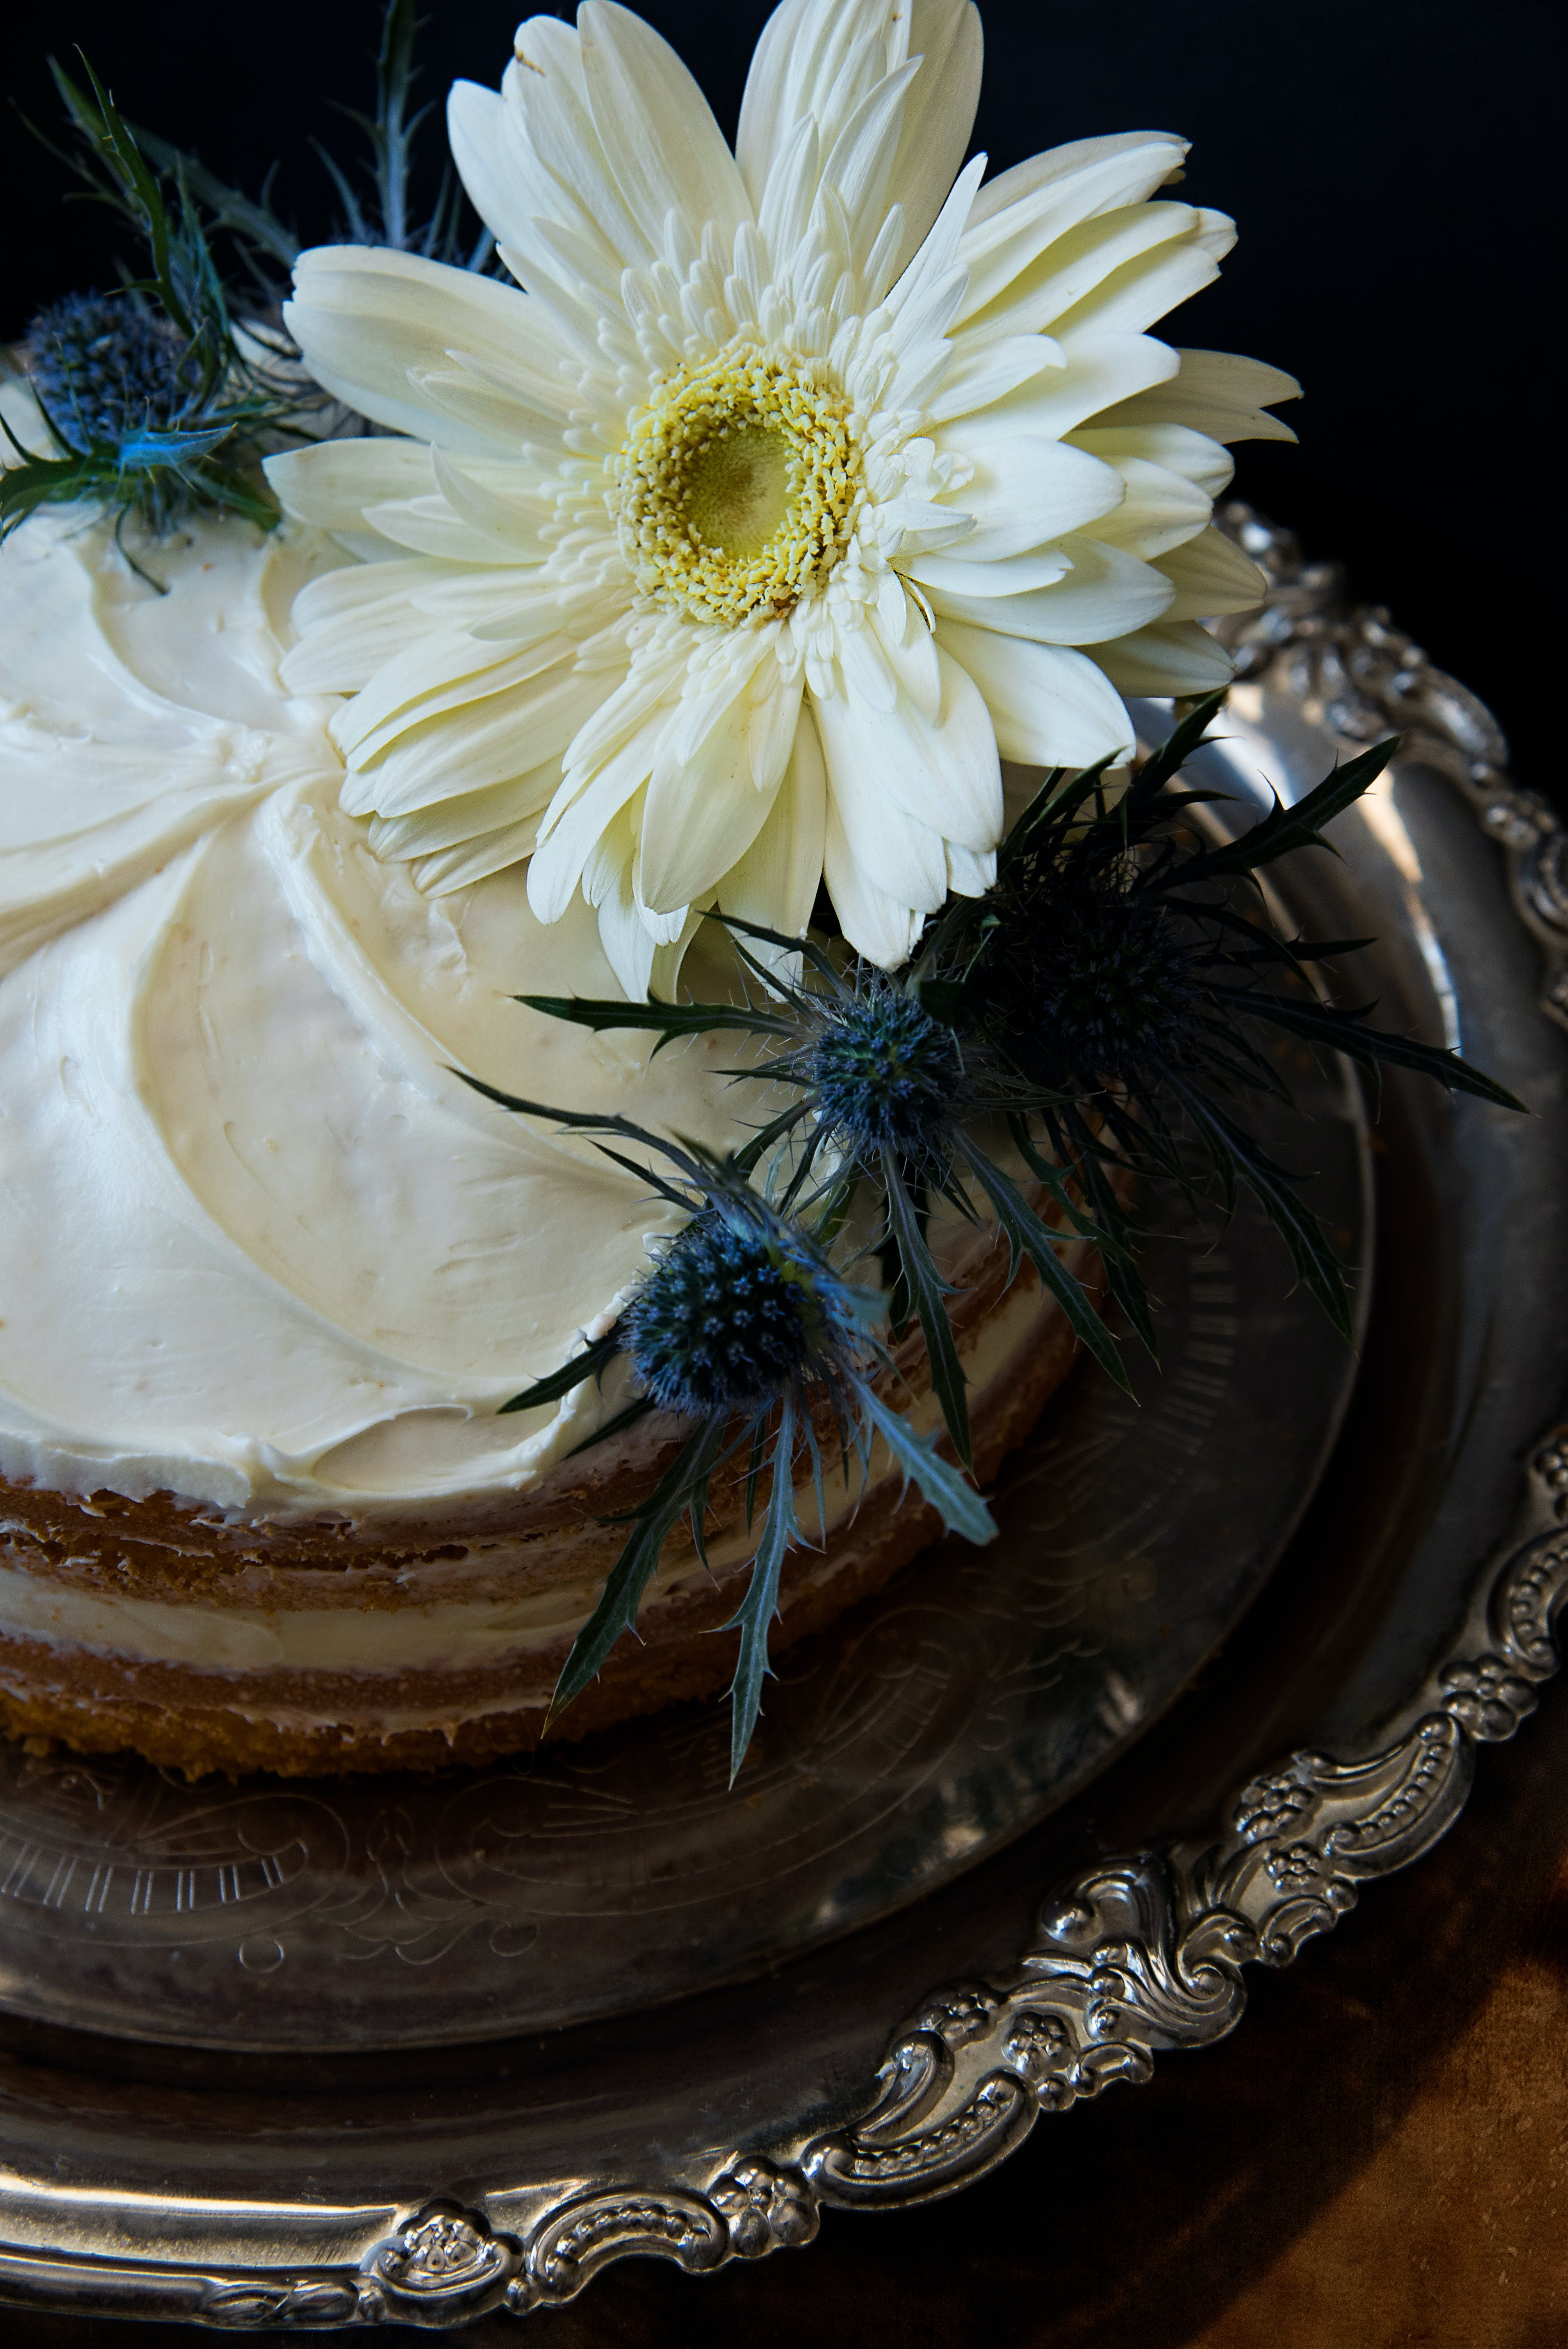 White Flowers on Round Cake With White Cream